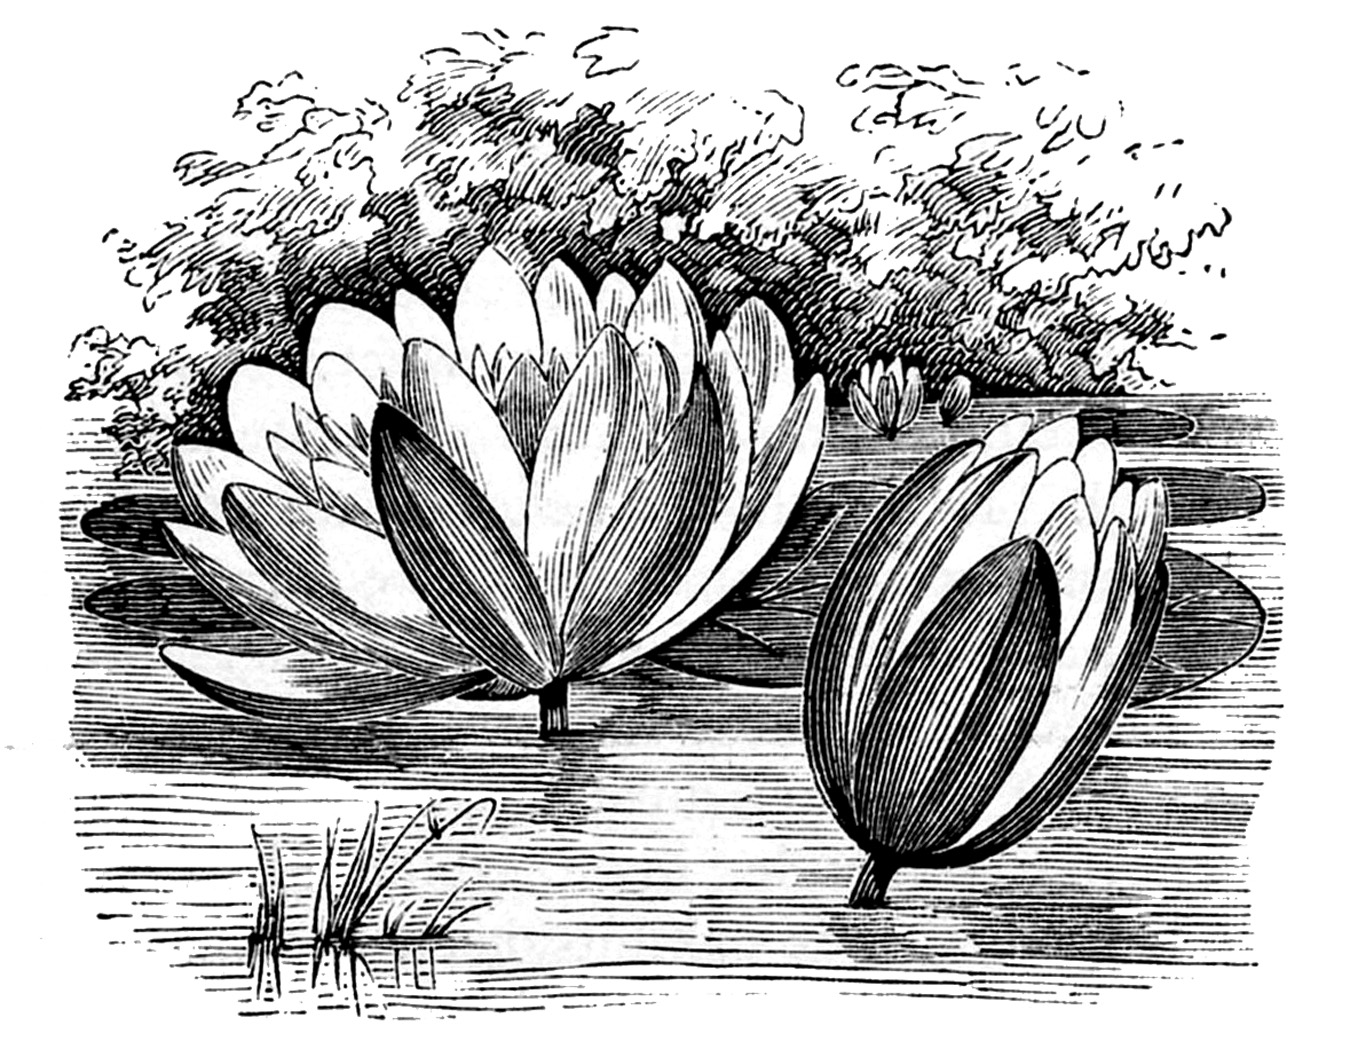 Vintage clip art water lily lotus flowers the graphics fairy vintage clip art water lily lotus flowers izmirmasajfo Images